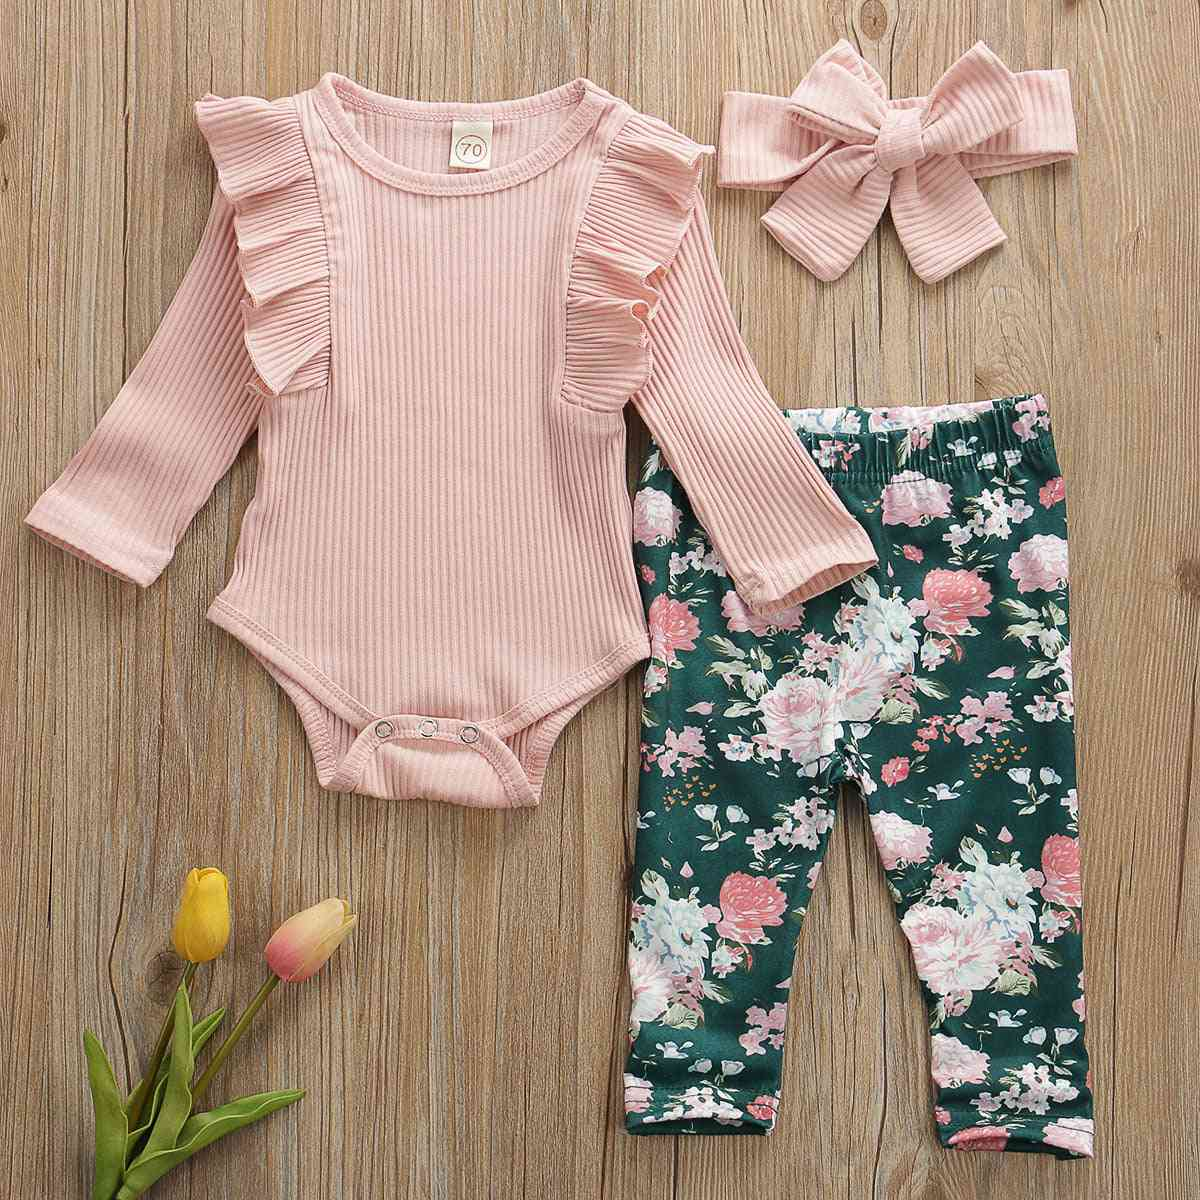 Newborn Baby Girl Clothes, Cotton Romper Tops Pants